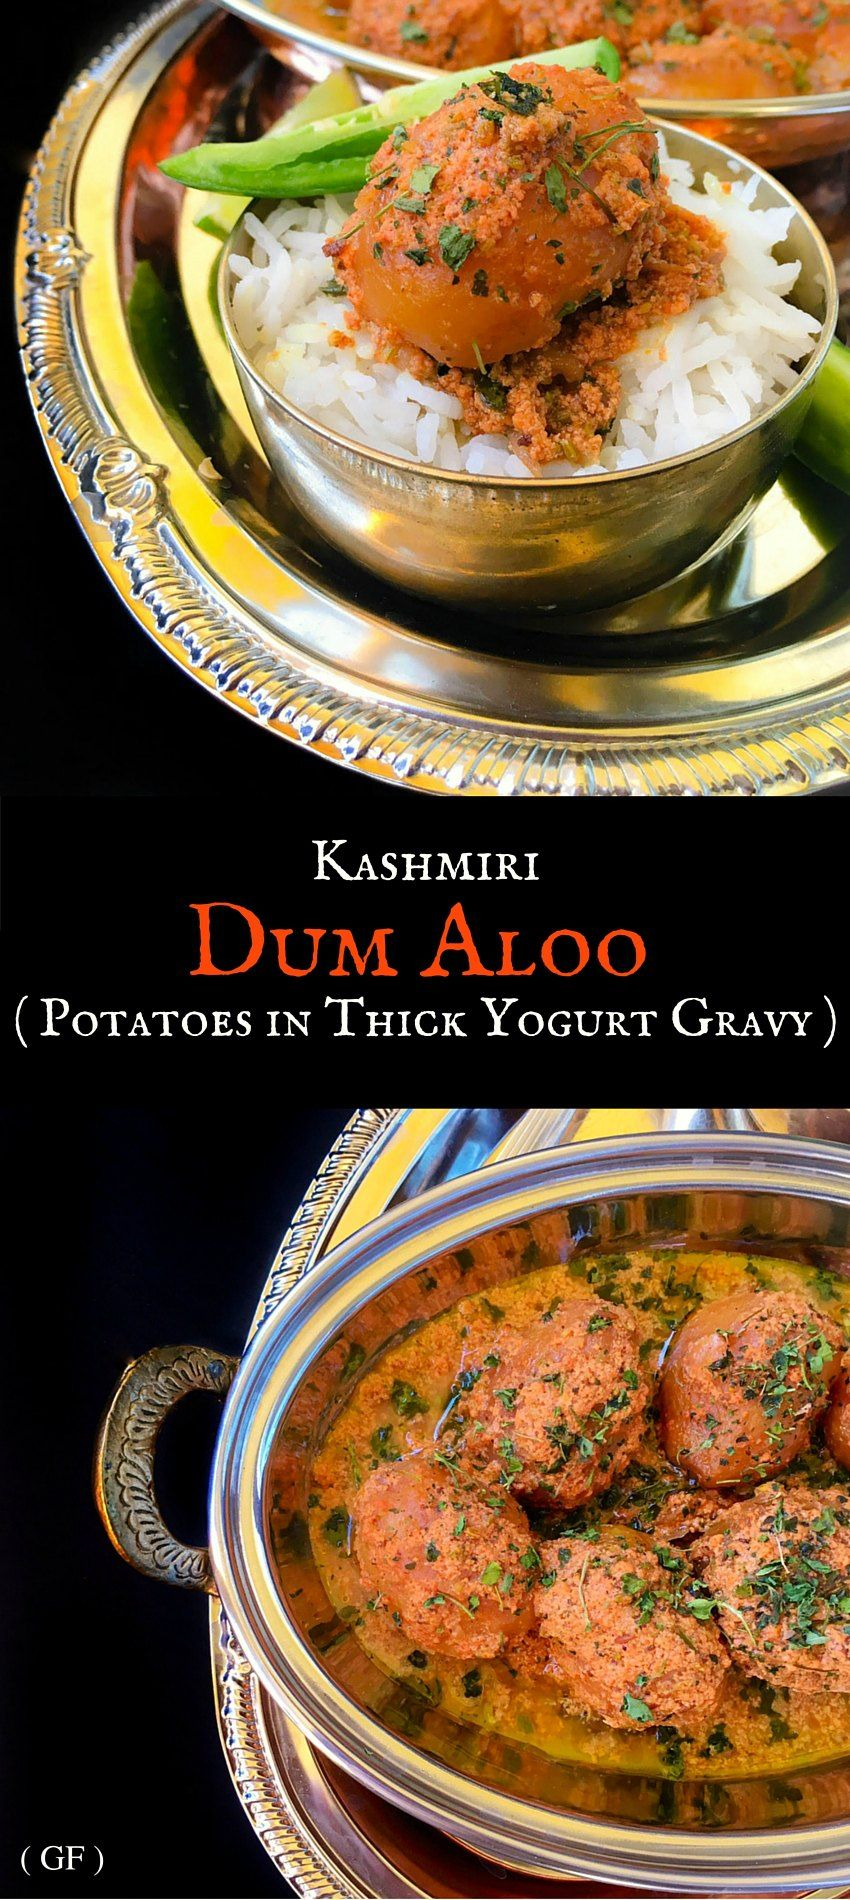 Kashmiri dum aloo potatoes in thick yogurt gravy recipe gravy kashmiri dum aloo potatoes in thick yogurt gravy ethnic recipesindian food forumfinder Image collections